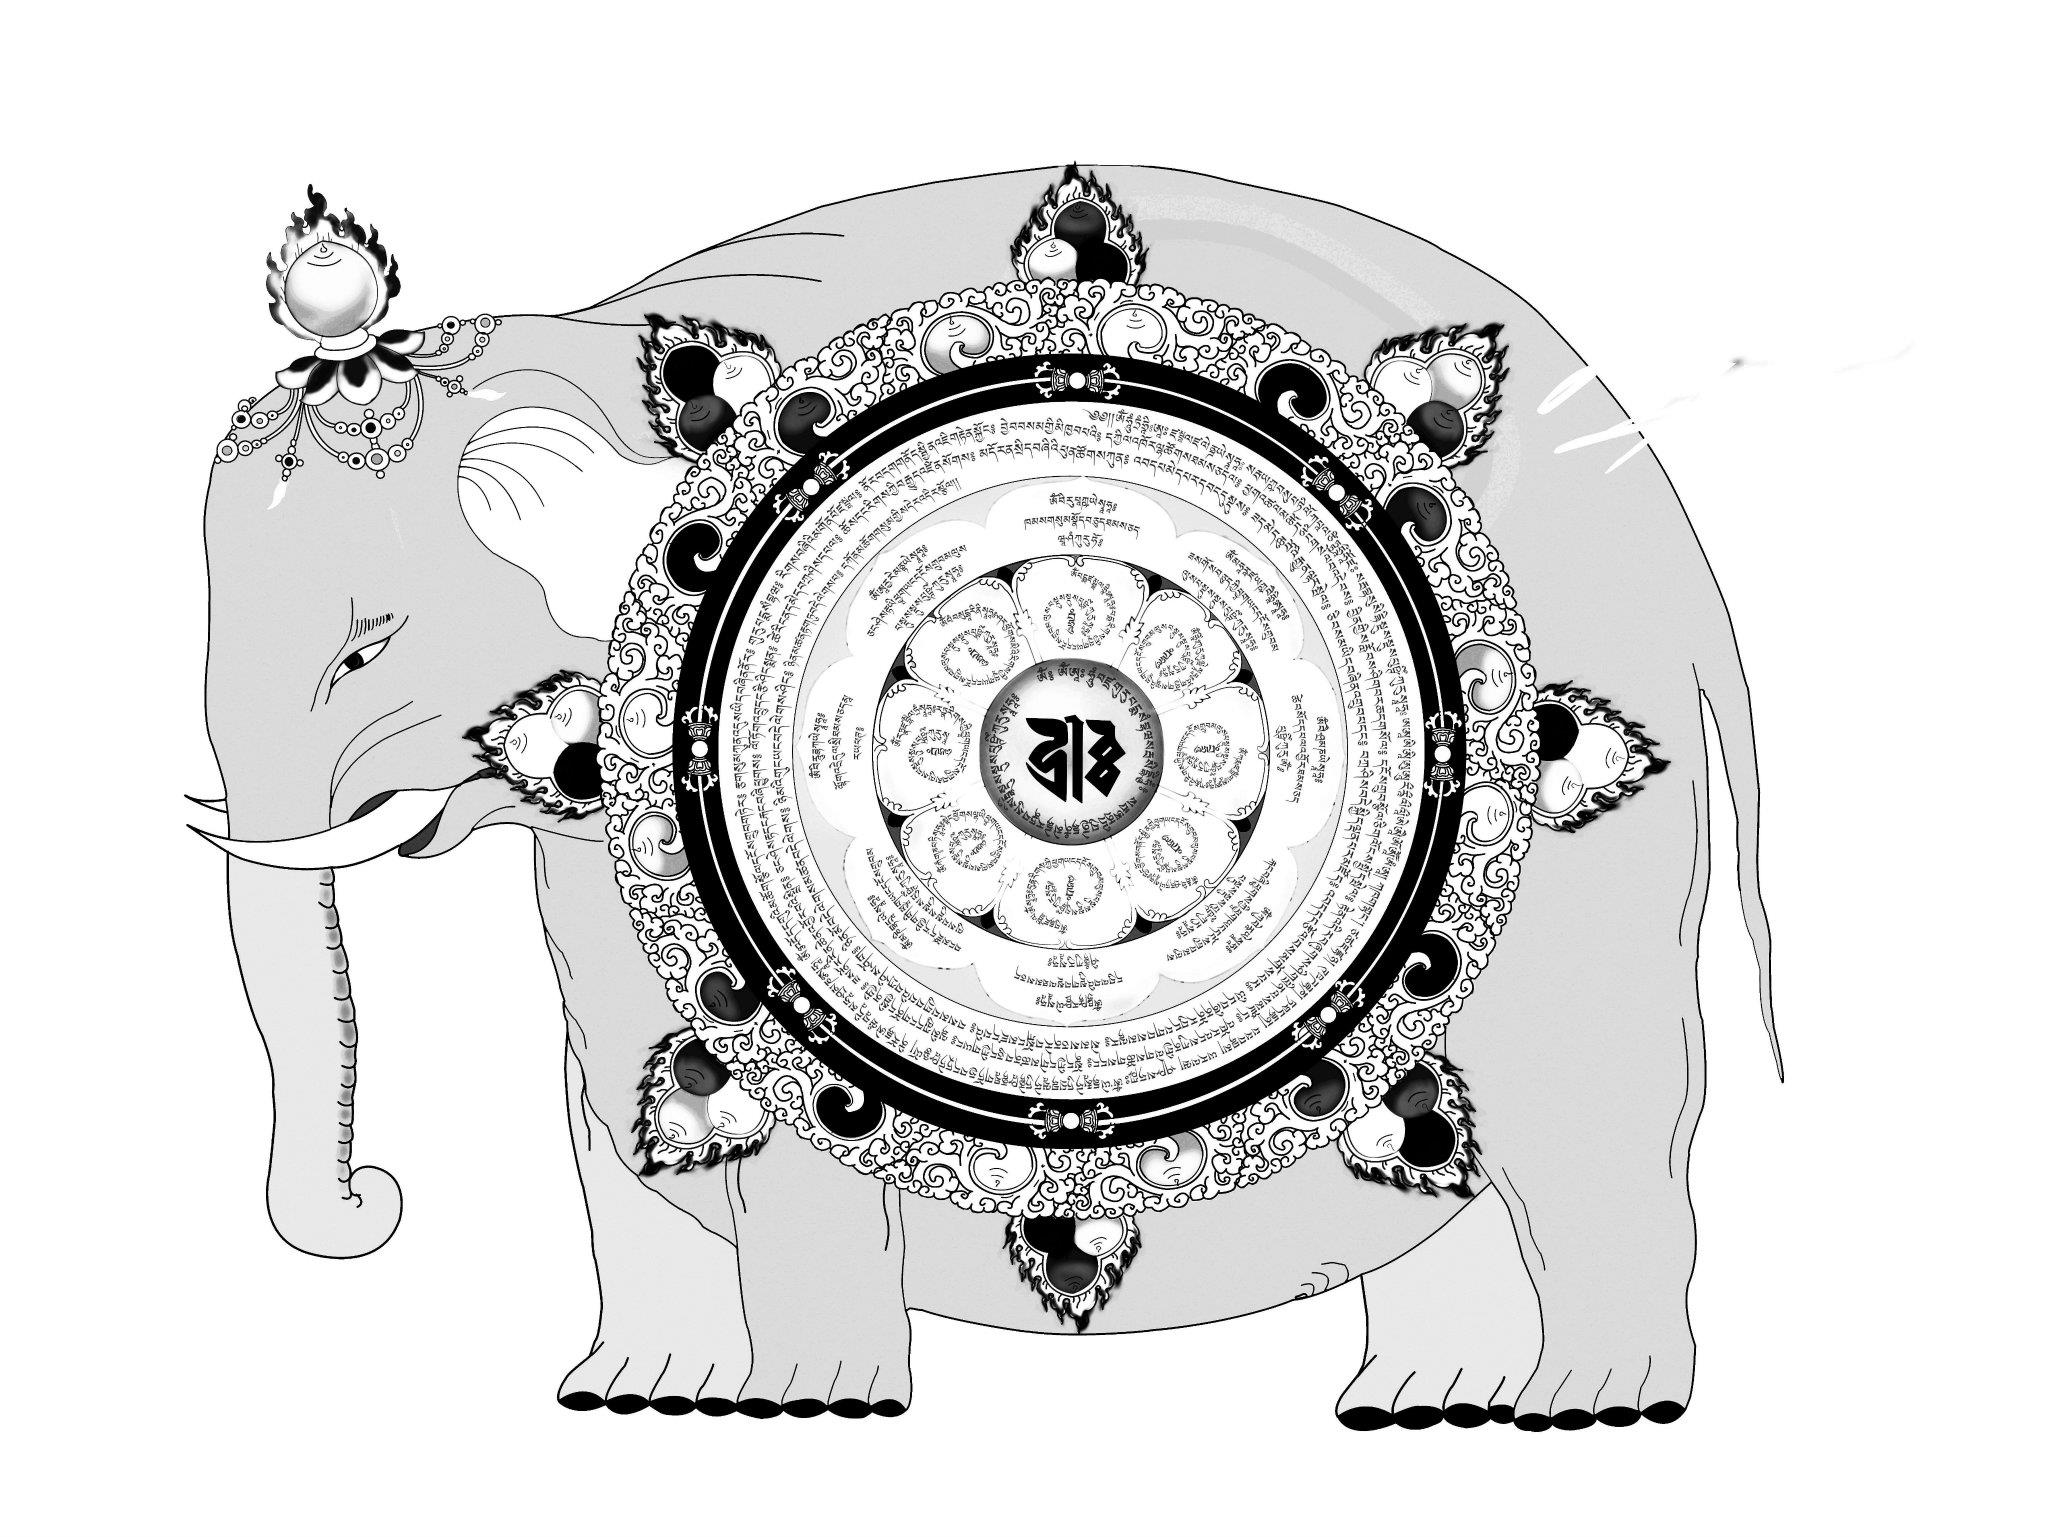 Wheel_of_the_Meritorious_Elephant_Generating_Power_-_Terma_of_Padmasmbhawa.jpg